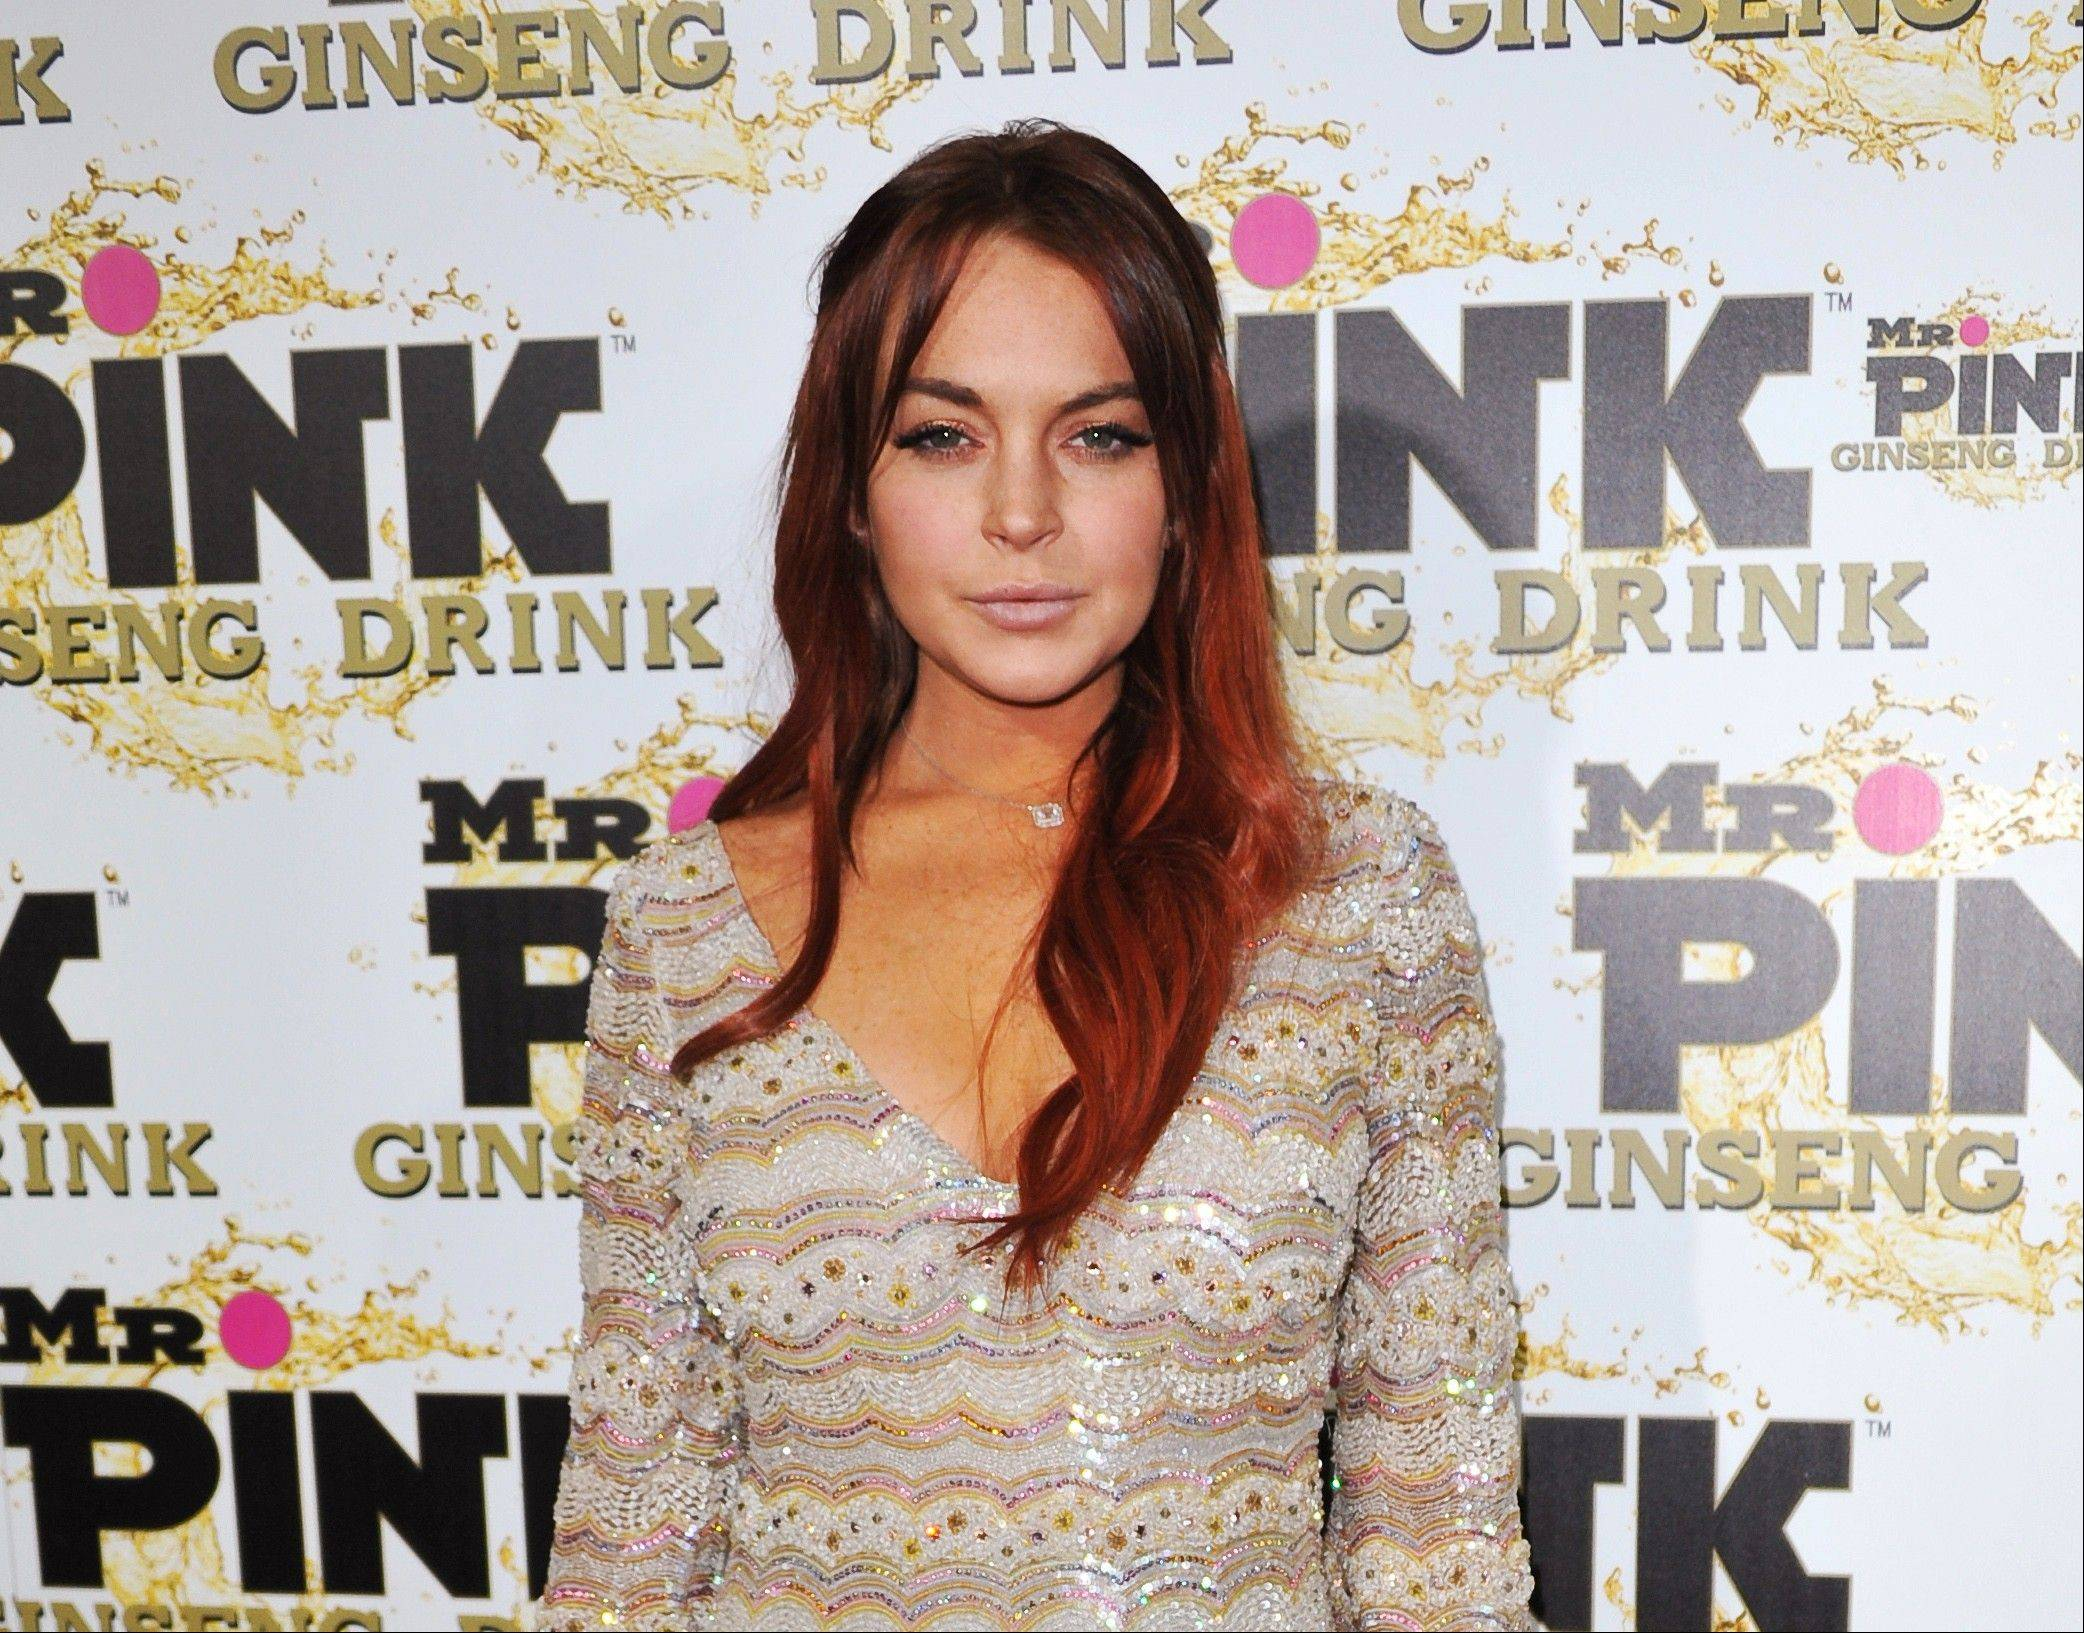 A scheduling hearing for a case alleging Lindsay Lohan lied to police, drove recklessly and obstructed officers from performing their duties is scheduled for Wednesday before a judge who has previously sentenced the actress to house arrest and jail time.